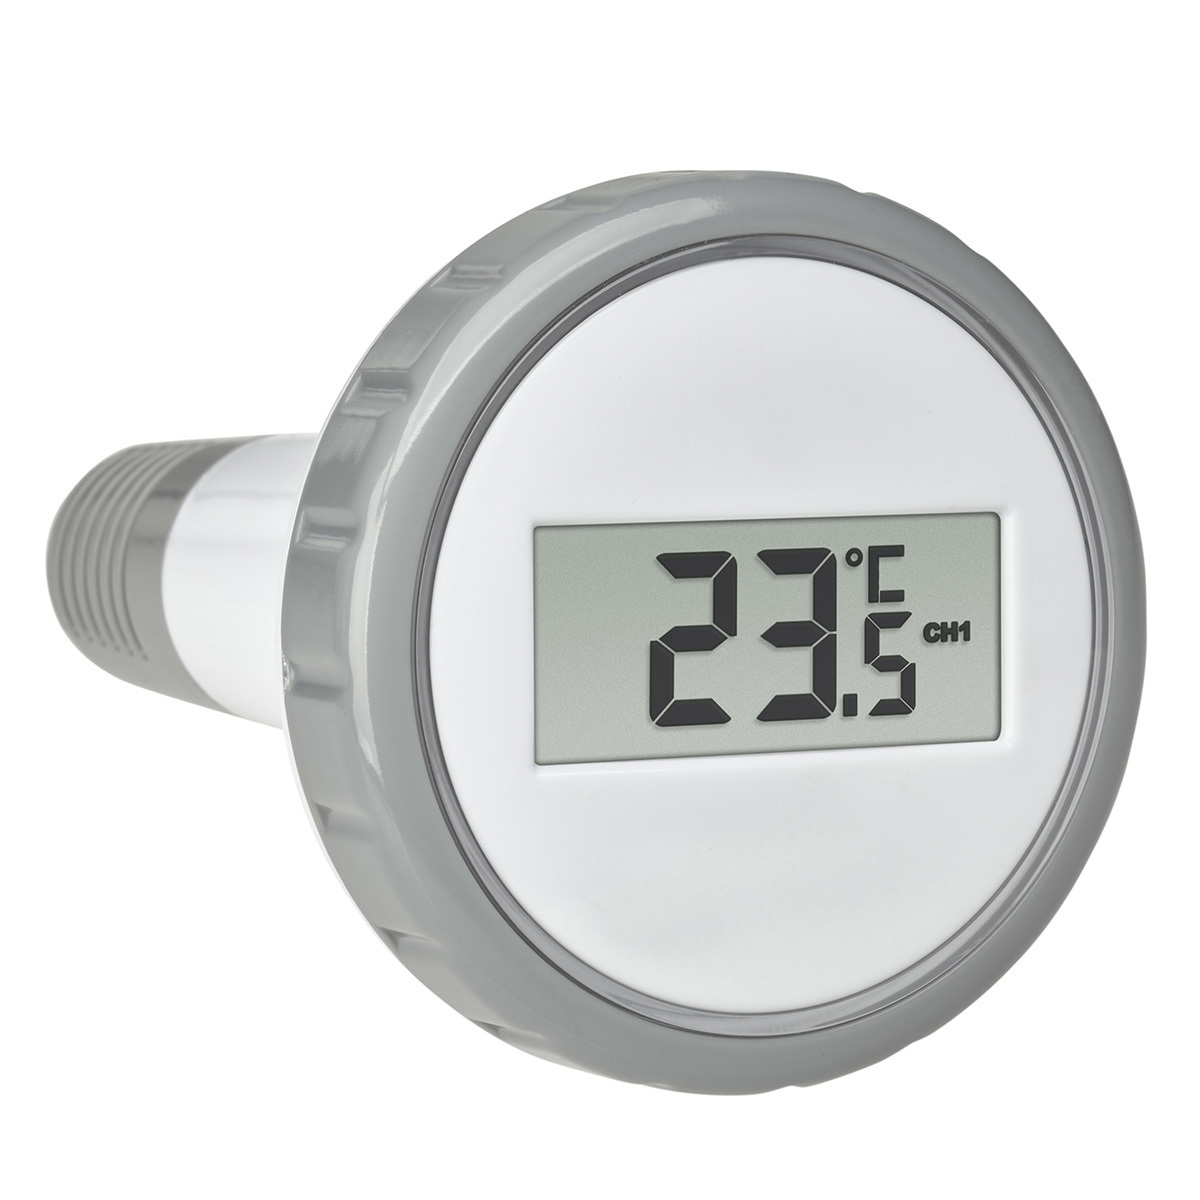 TFA 40.2007 Poolwatch Piscine Thermomètre étang Thermomètre De Piscine Thermomètre